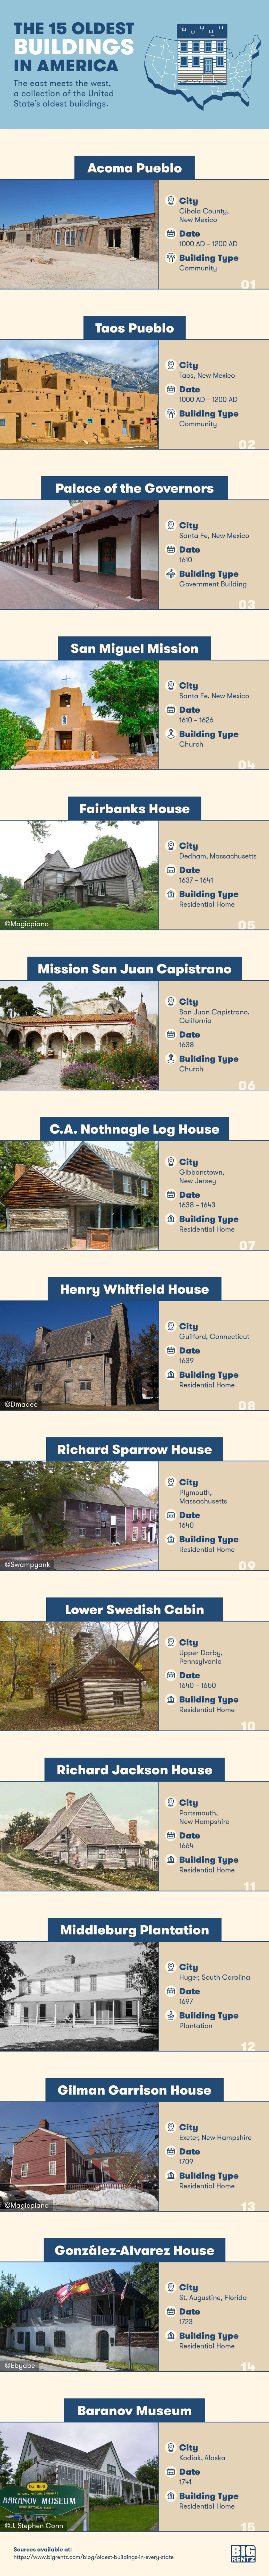 Infographic Oldest buildings in the US | From the blog of Nicholas C. Rossis, author of science fiction, the Pearseus epic fantasy series and children's books